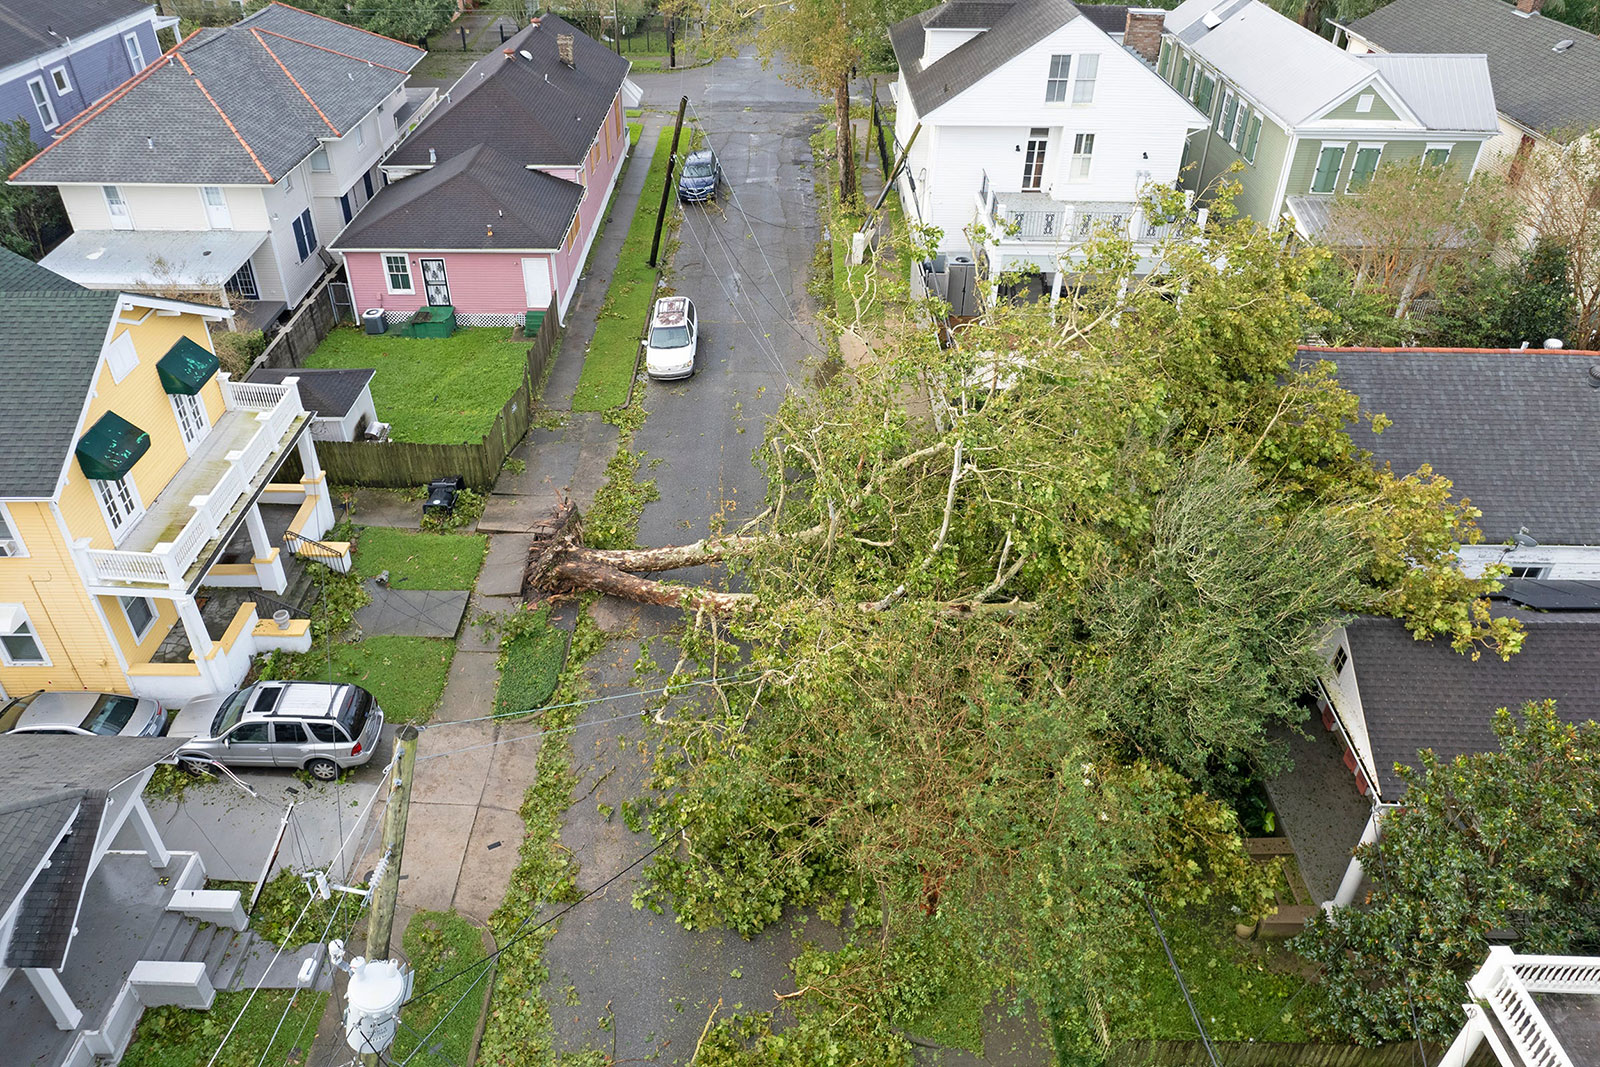 A tree lies on a house in the Uptown neighborhood of New Orleans on Monday, August 30.